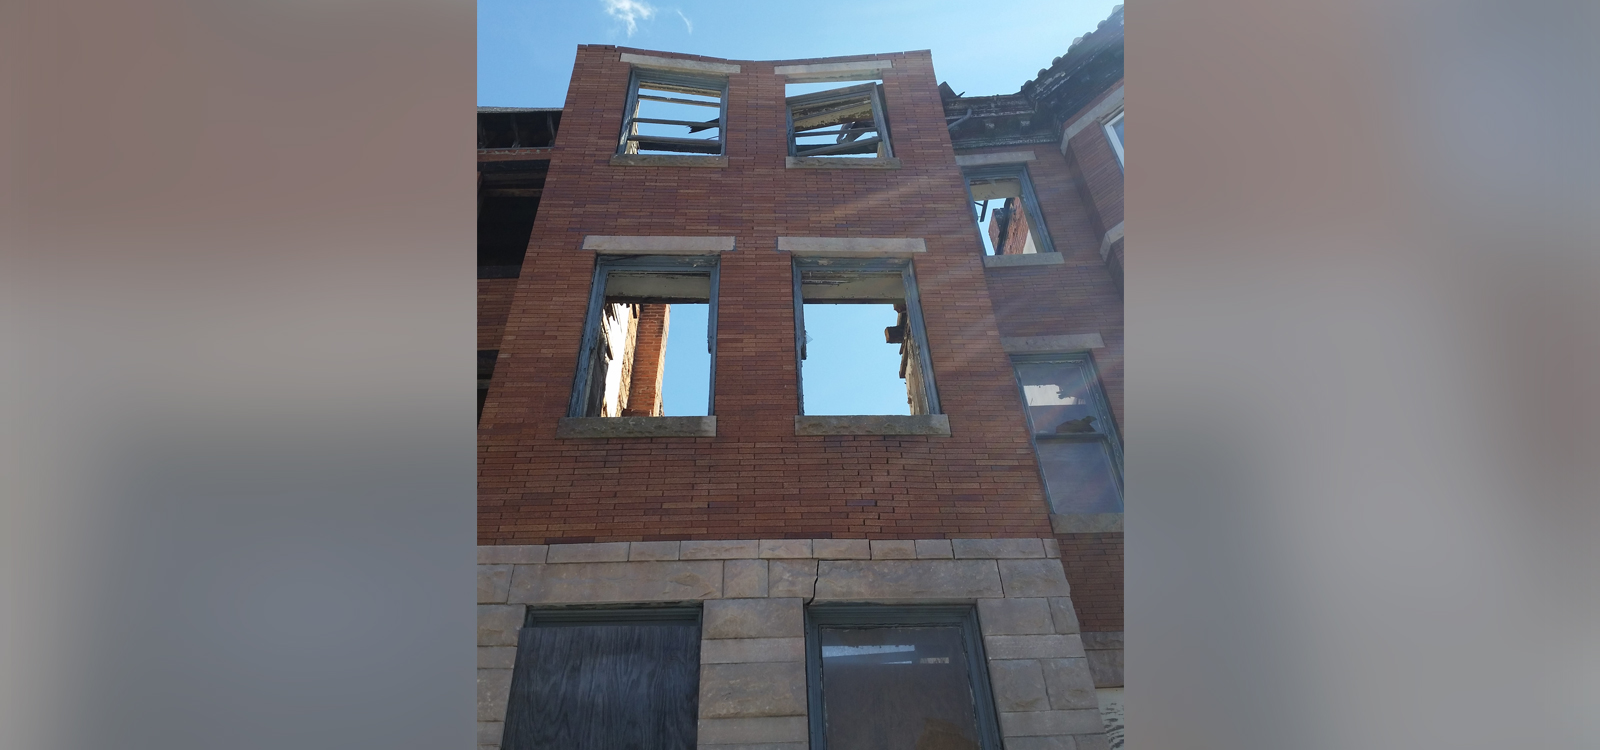 Callow Ave. NSP2 Project, Baltimore, residential renovation by UrbanBuilt